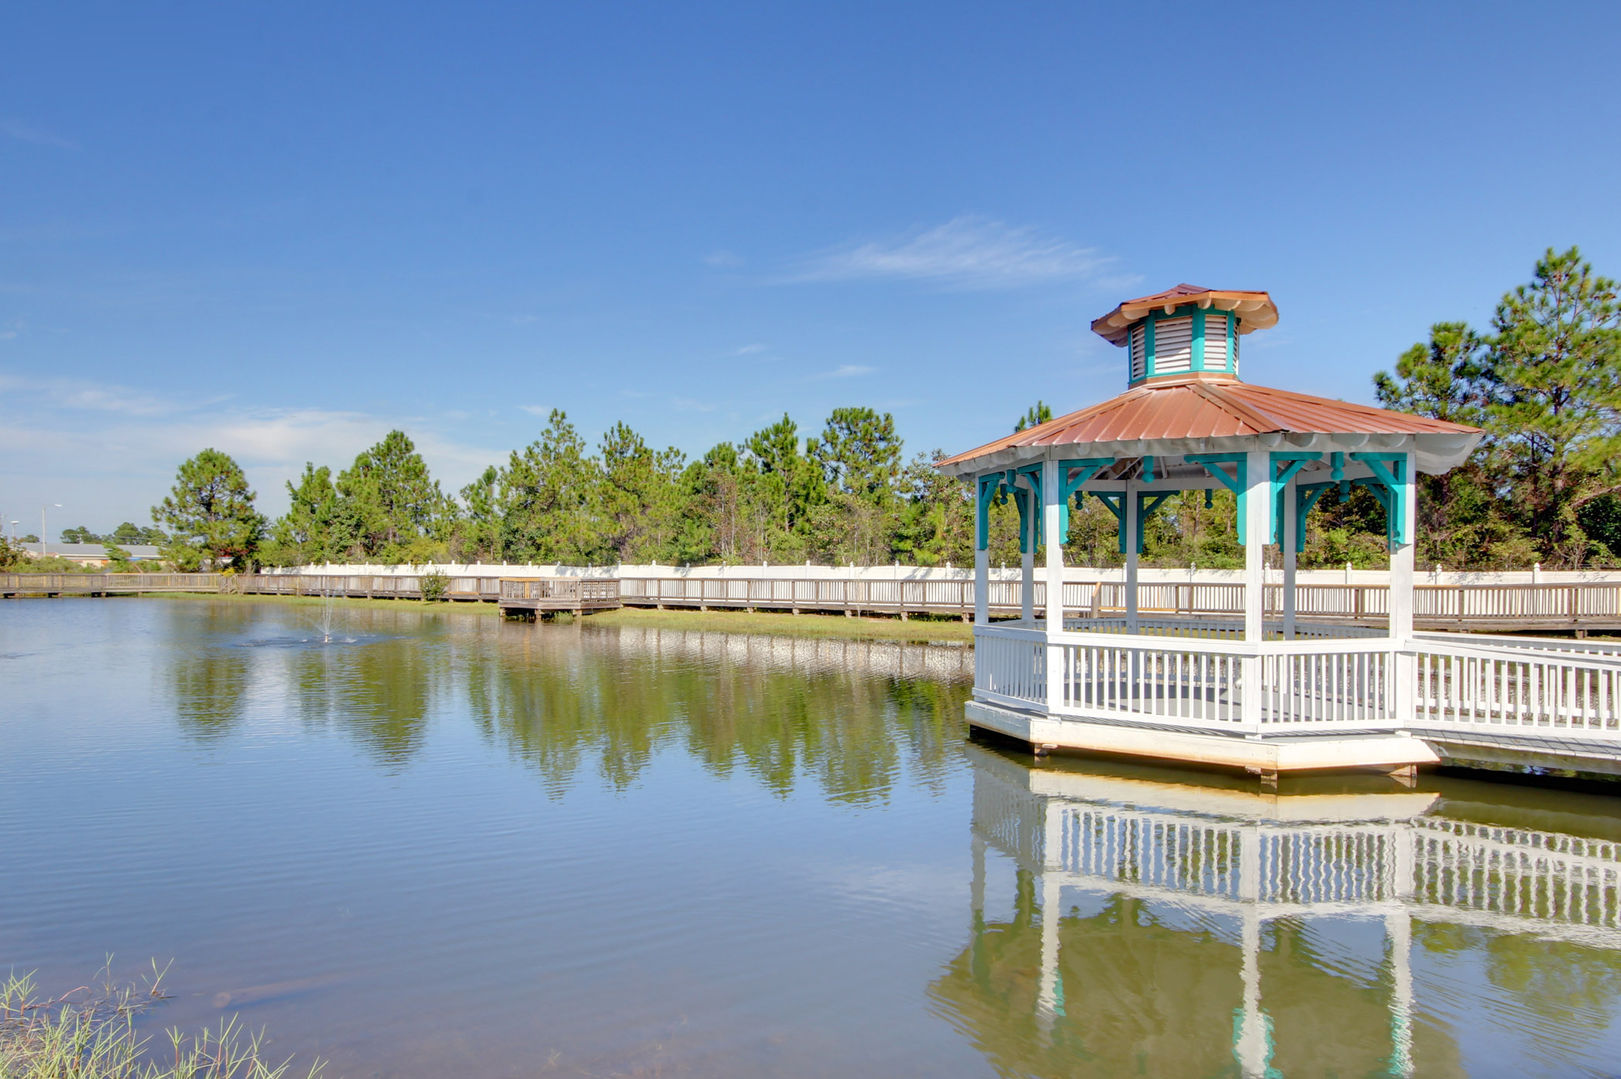 Experience a Gulf Coast sunset from this dock overlooking the lake.